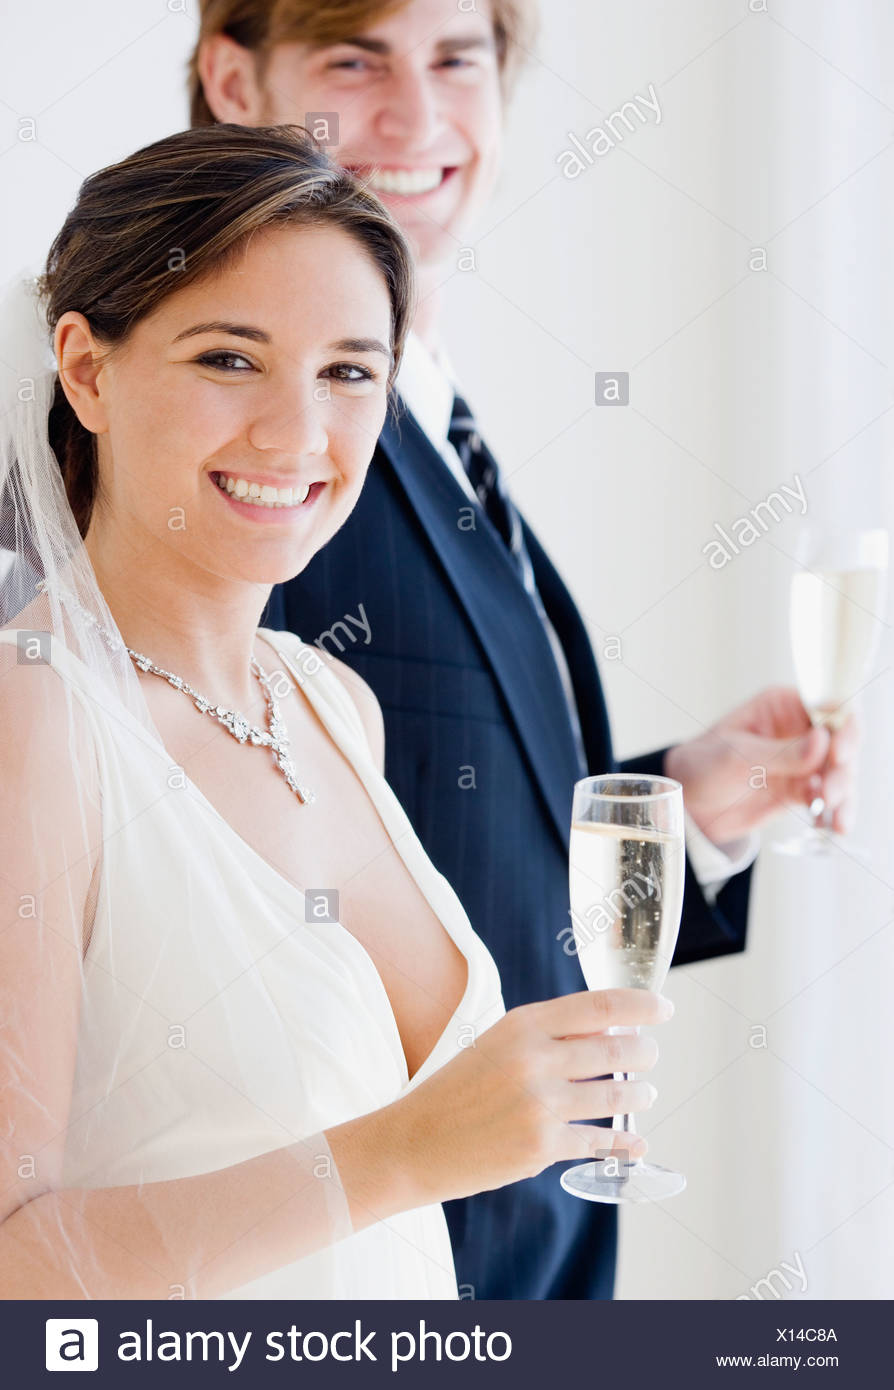 Bride and groom holding champagne glasses - Stock Image